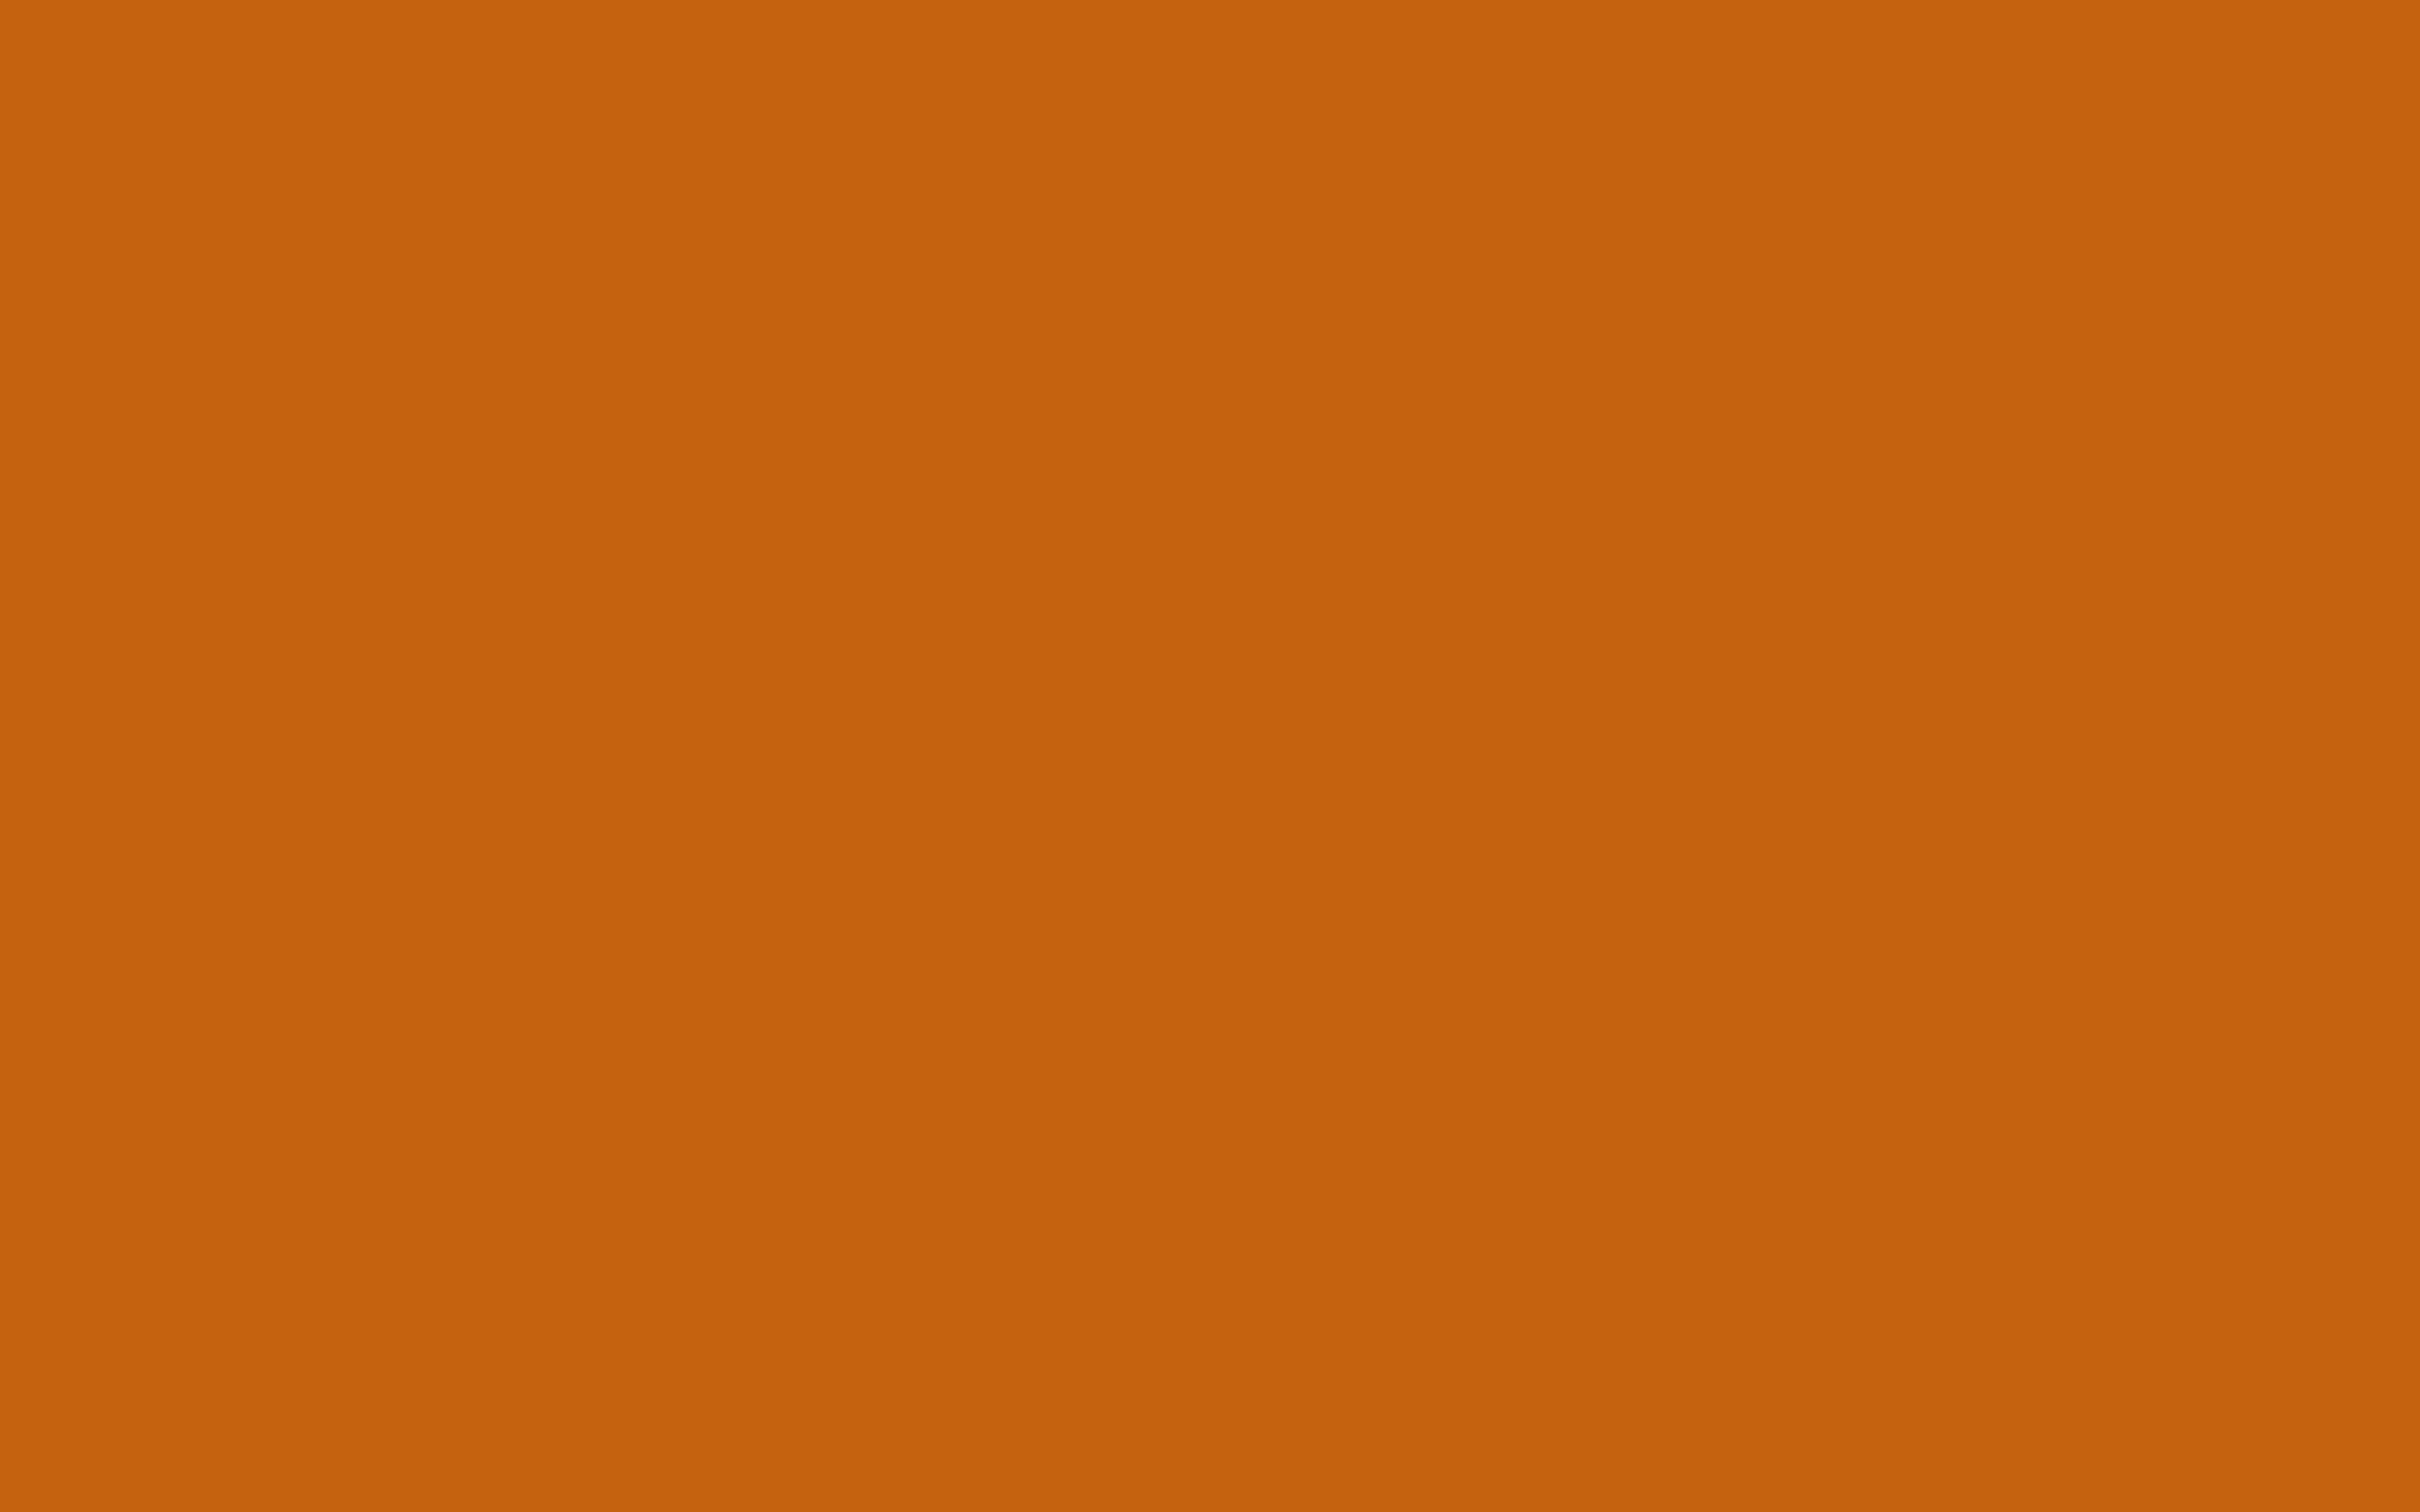 2560x1600 Alloy Orange Solid Color Background